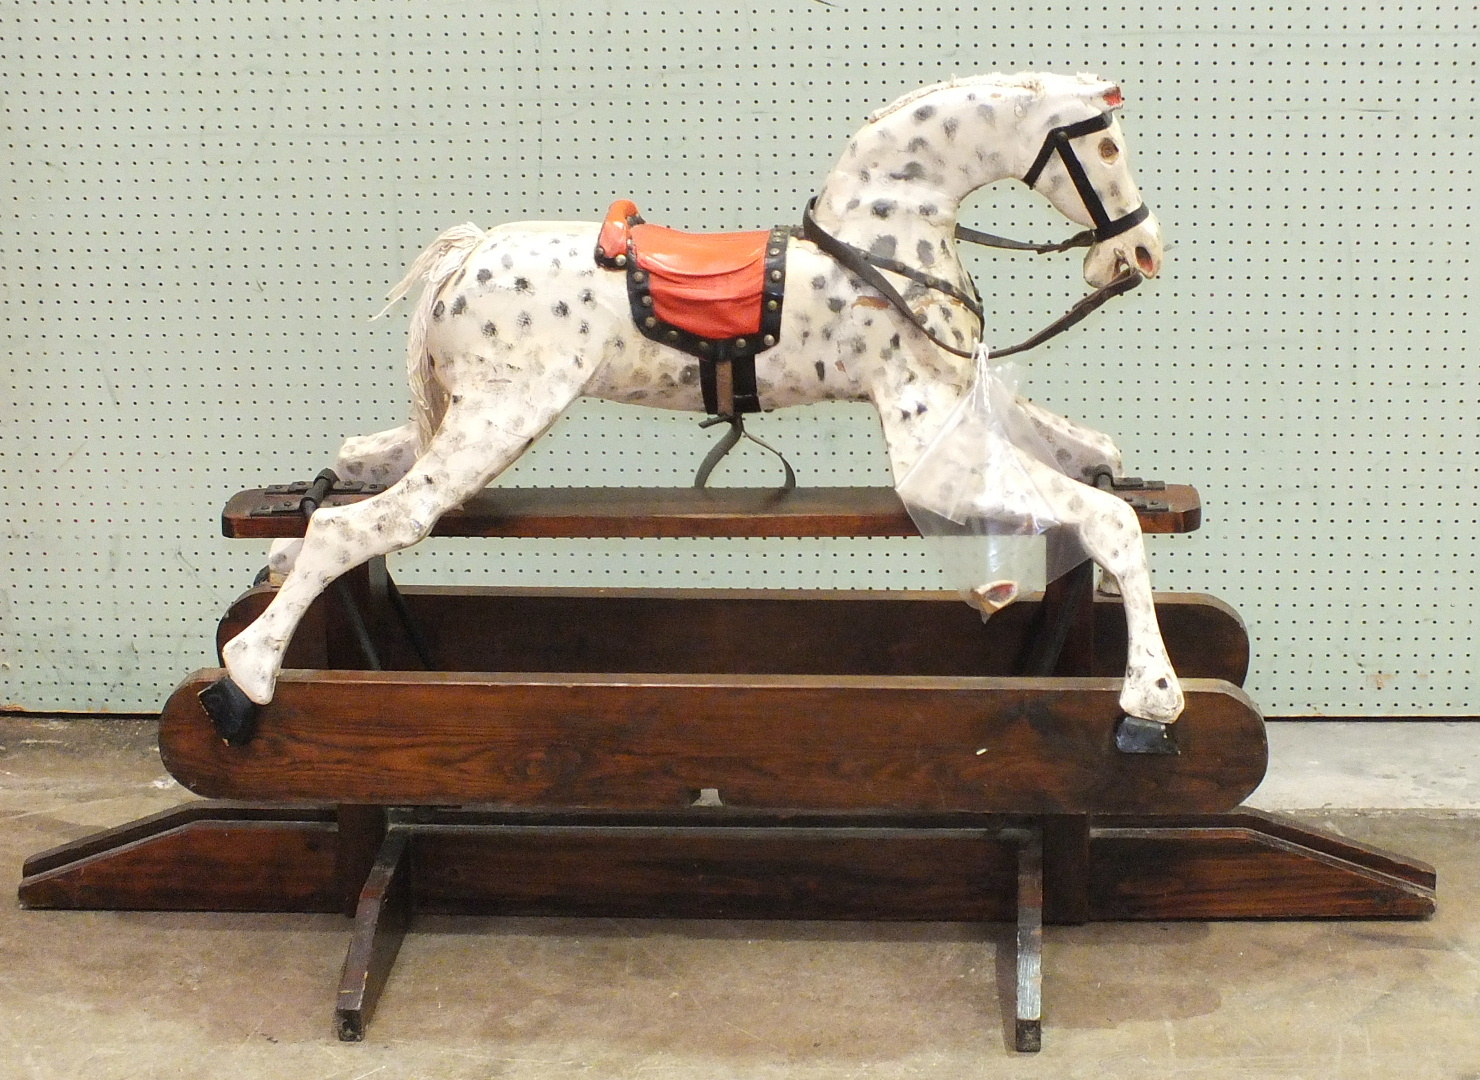 Lot 483 - A small painted rocking horse in need of restoration, horse 90cm long, 64cm high, 138cm x 83cm,